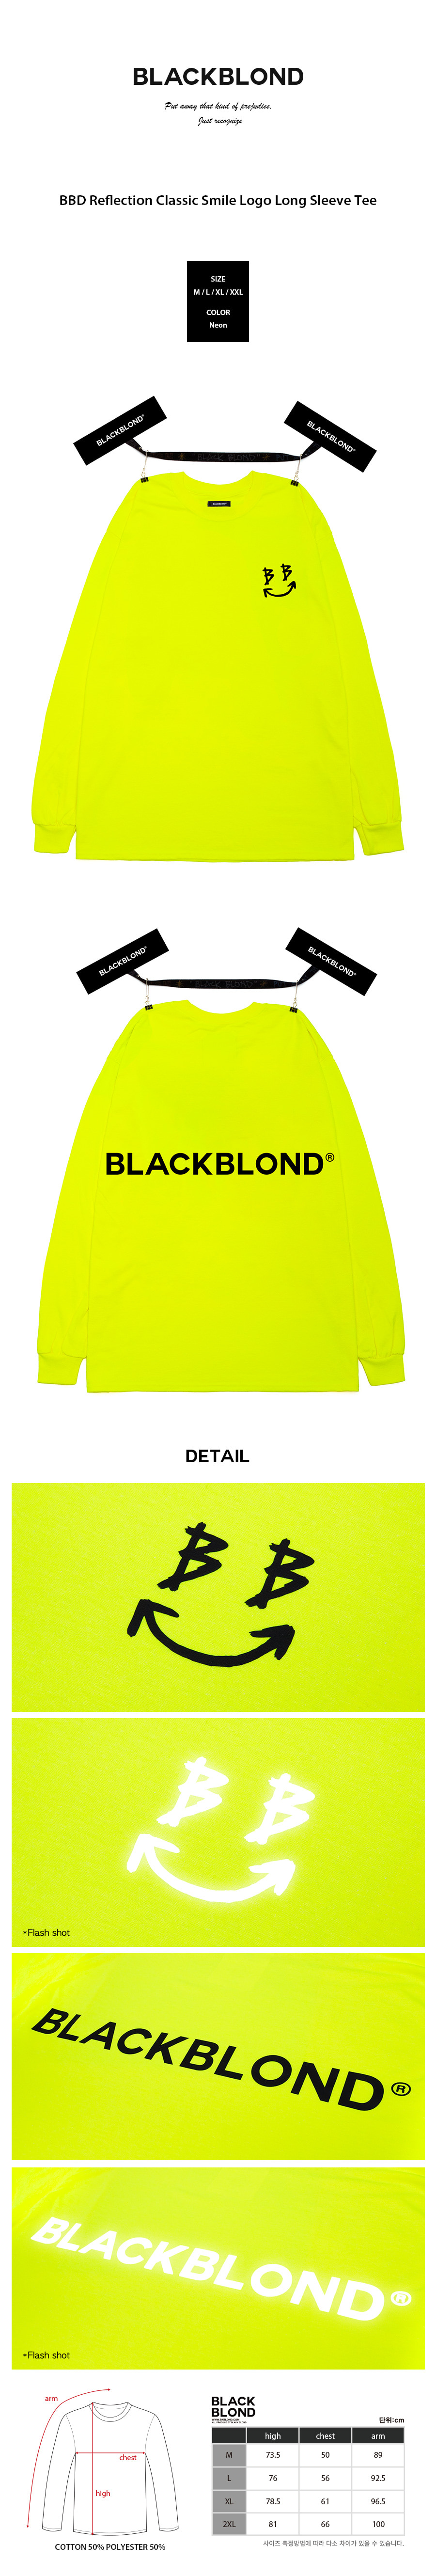 BBD-Reflection-Classic-Smile-Logo-Long-Sleeve-Tee-%28Neon%29.jpg